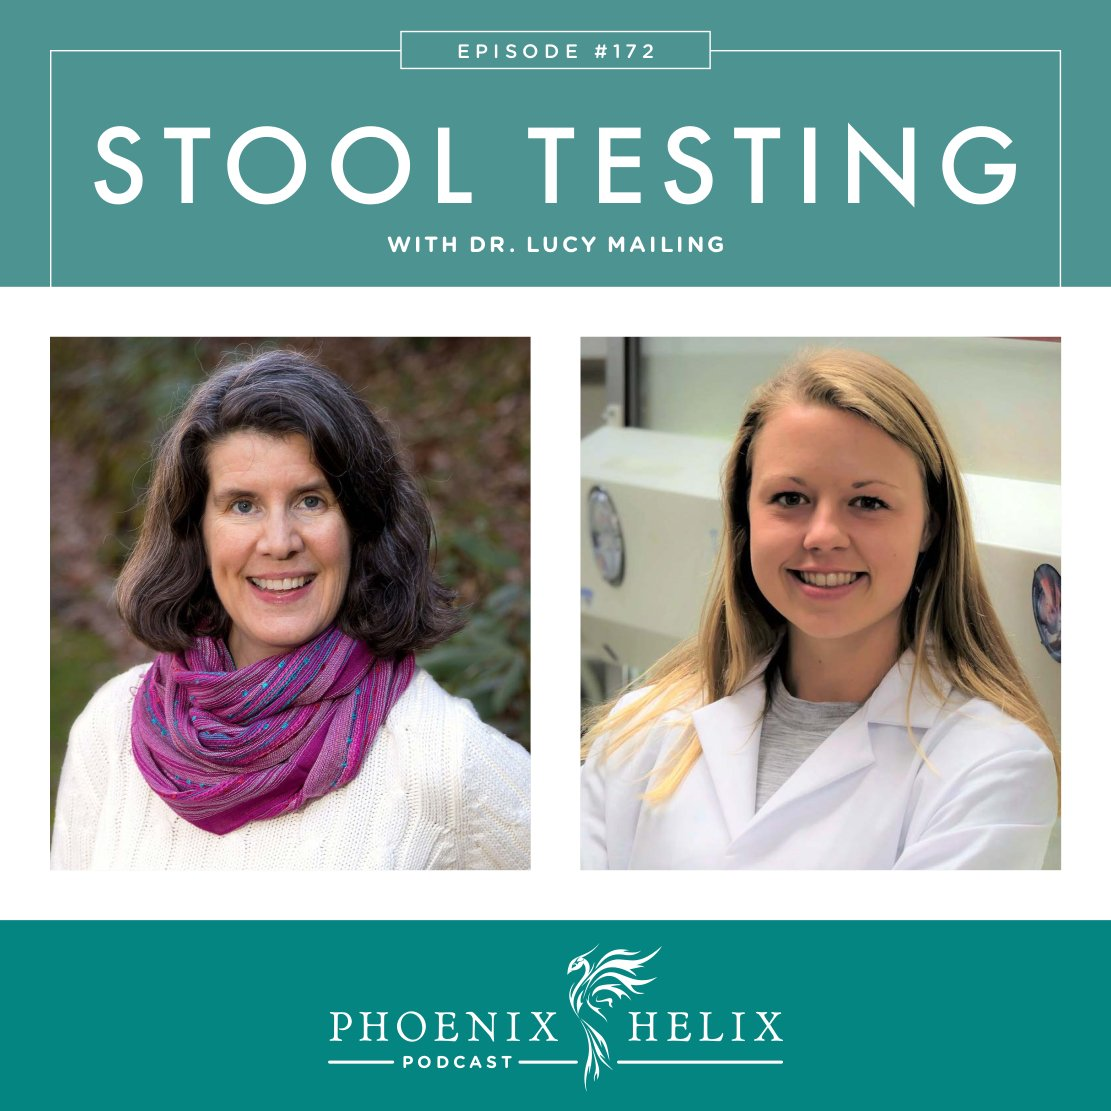 Stool Testing with Dr. Lucy Mailing | Phoenix Helix Podcast